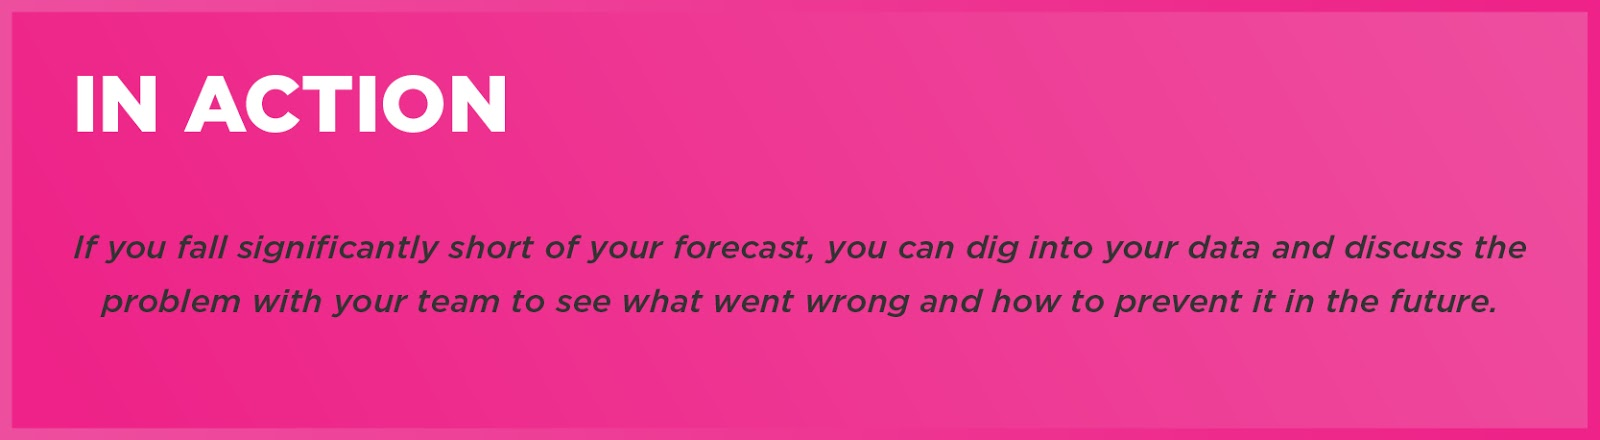 In Action: If you fall significantly short of your forecast, you can dig into your data and discuss the problem with your team to see what went wrong and how to prevent it in the future.